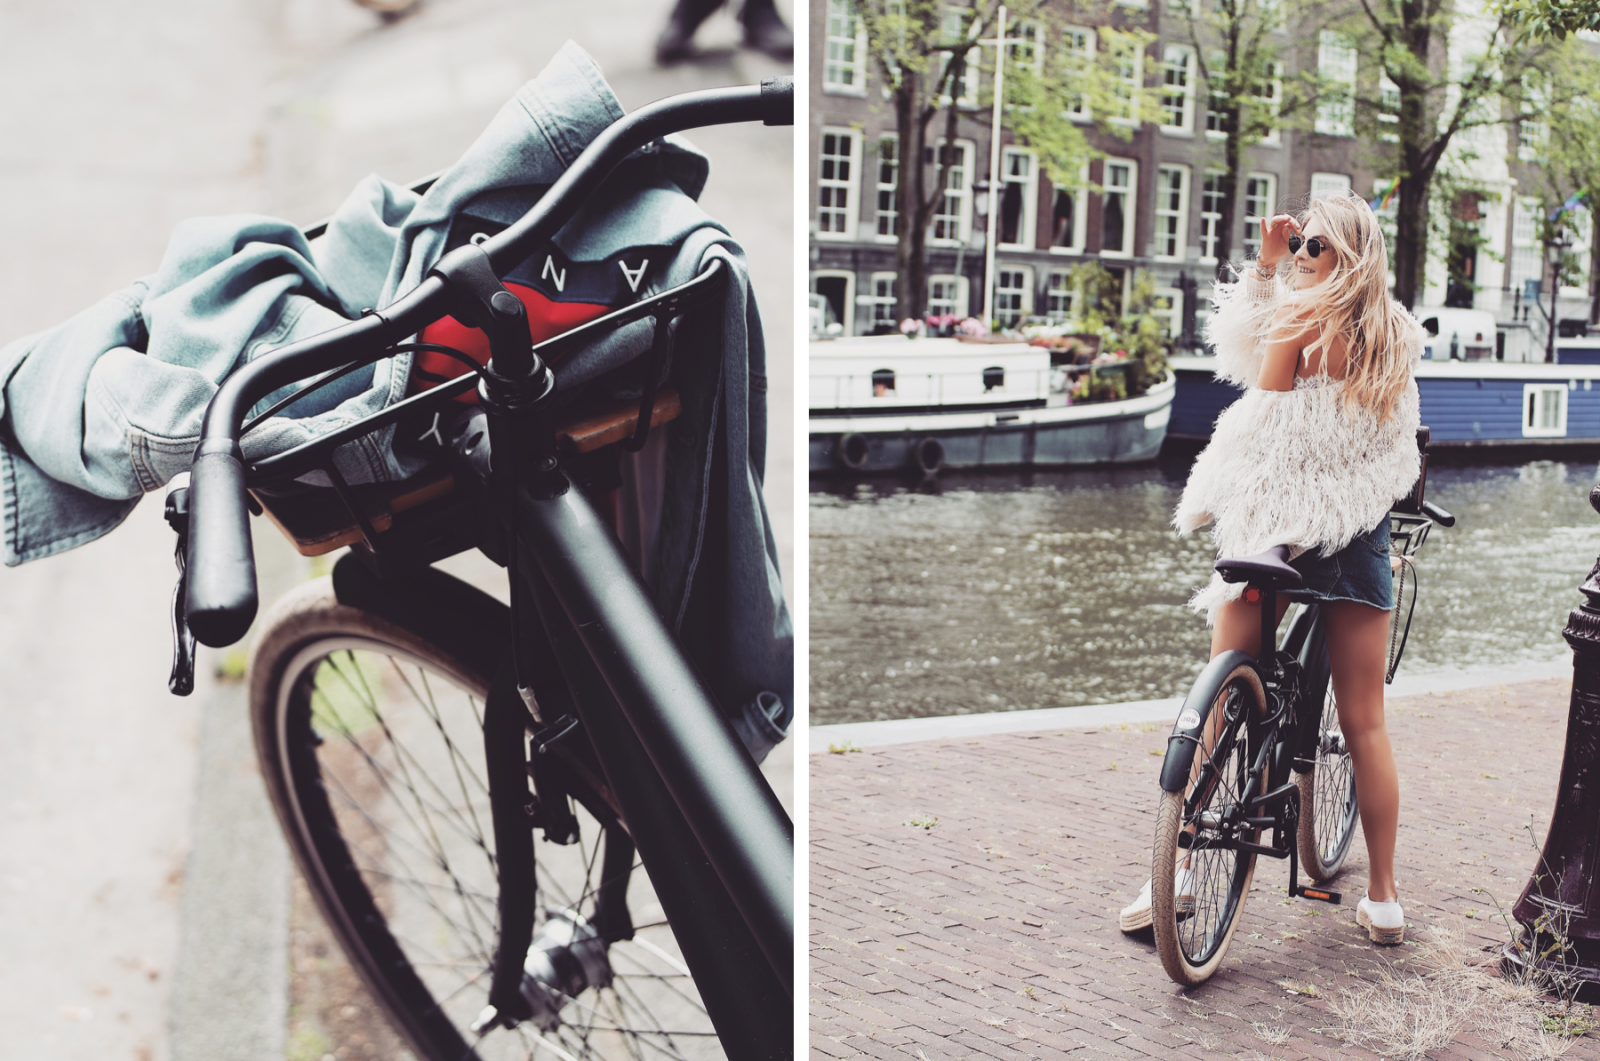 48 Hours In Amsterdam - Canals